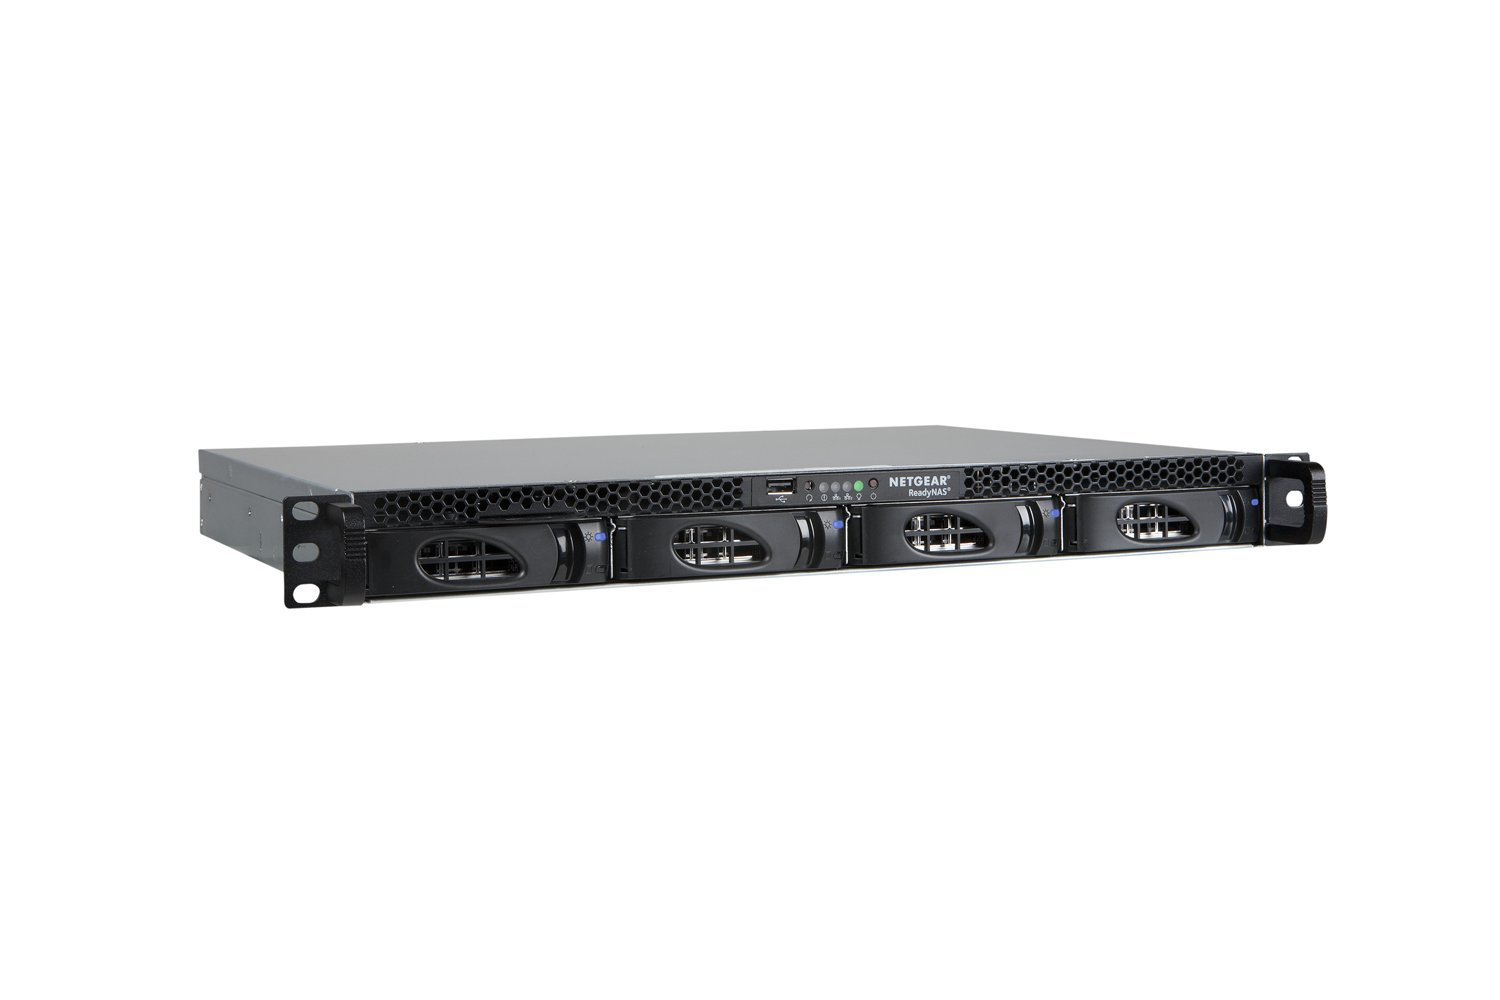 NETGEAR ReadyNAS 2120 1U Rackmount 4-Bay Network Attached Storage, Diskless (RN2120-200NES)